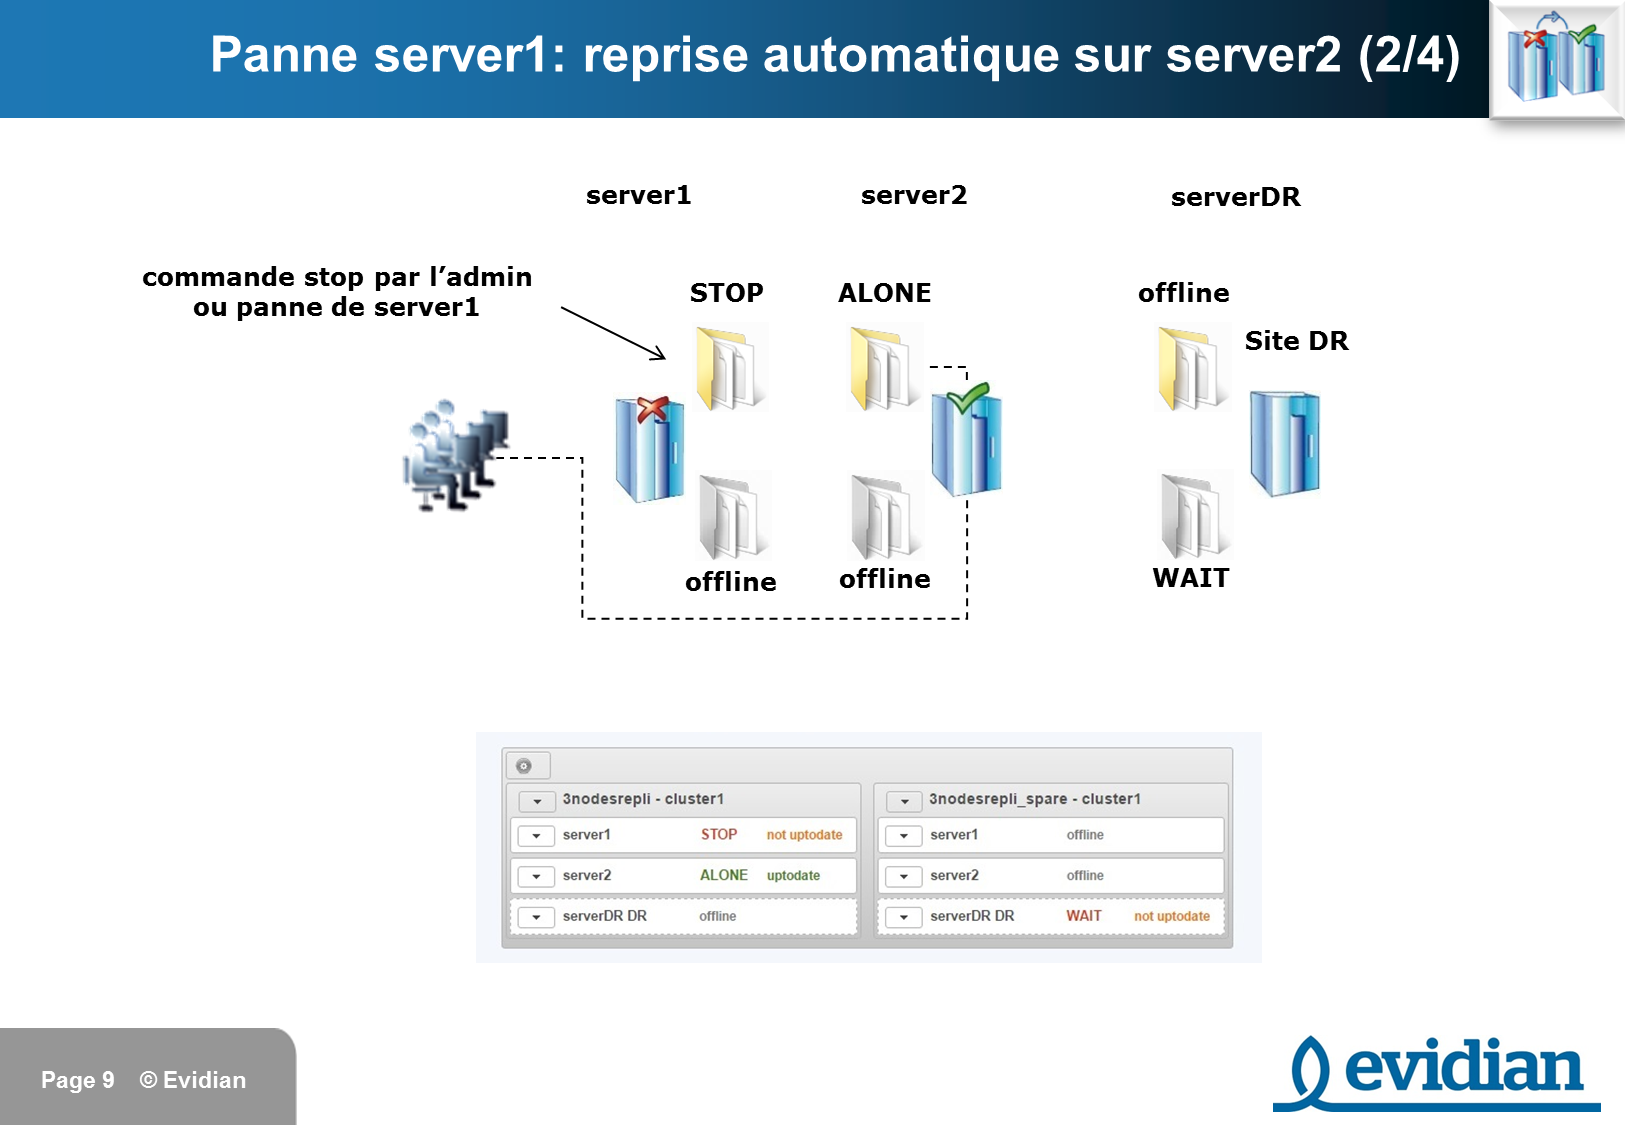 Formation à Evidian SafeKit - Réplication à 3 nœuds  - Slide 9